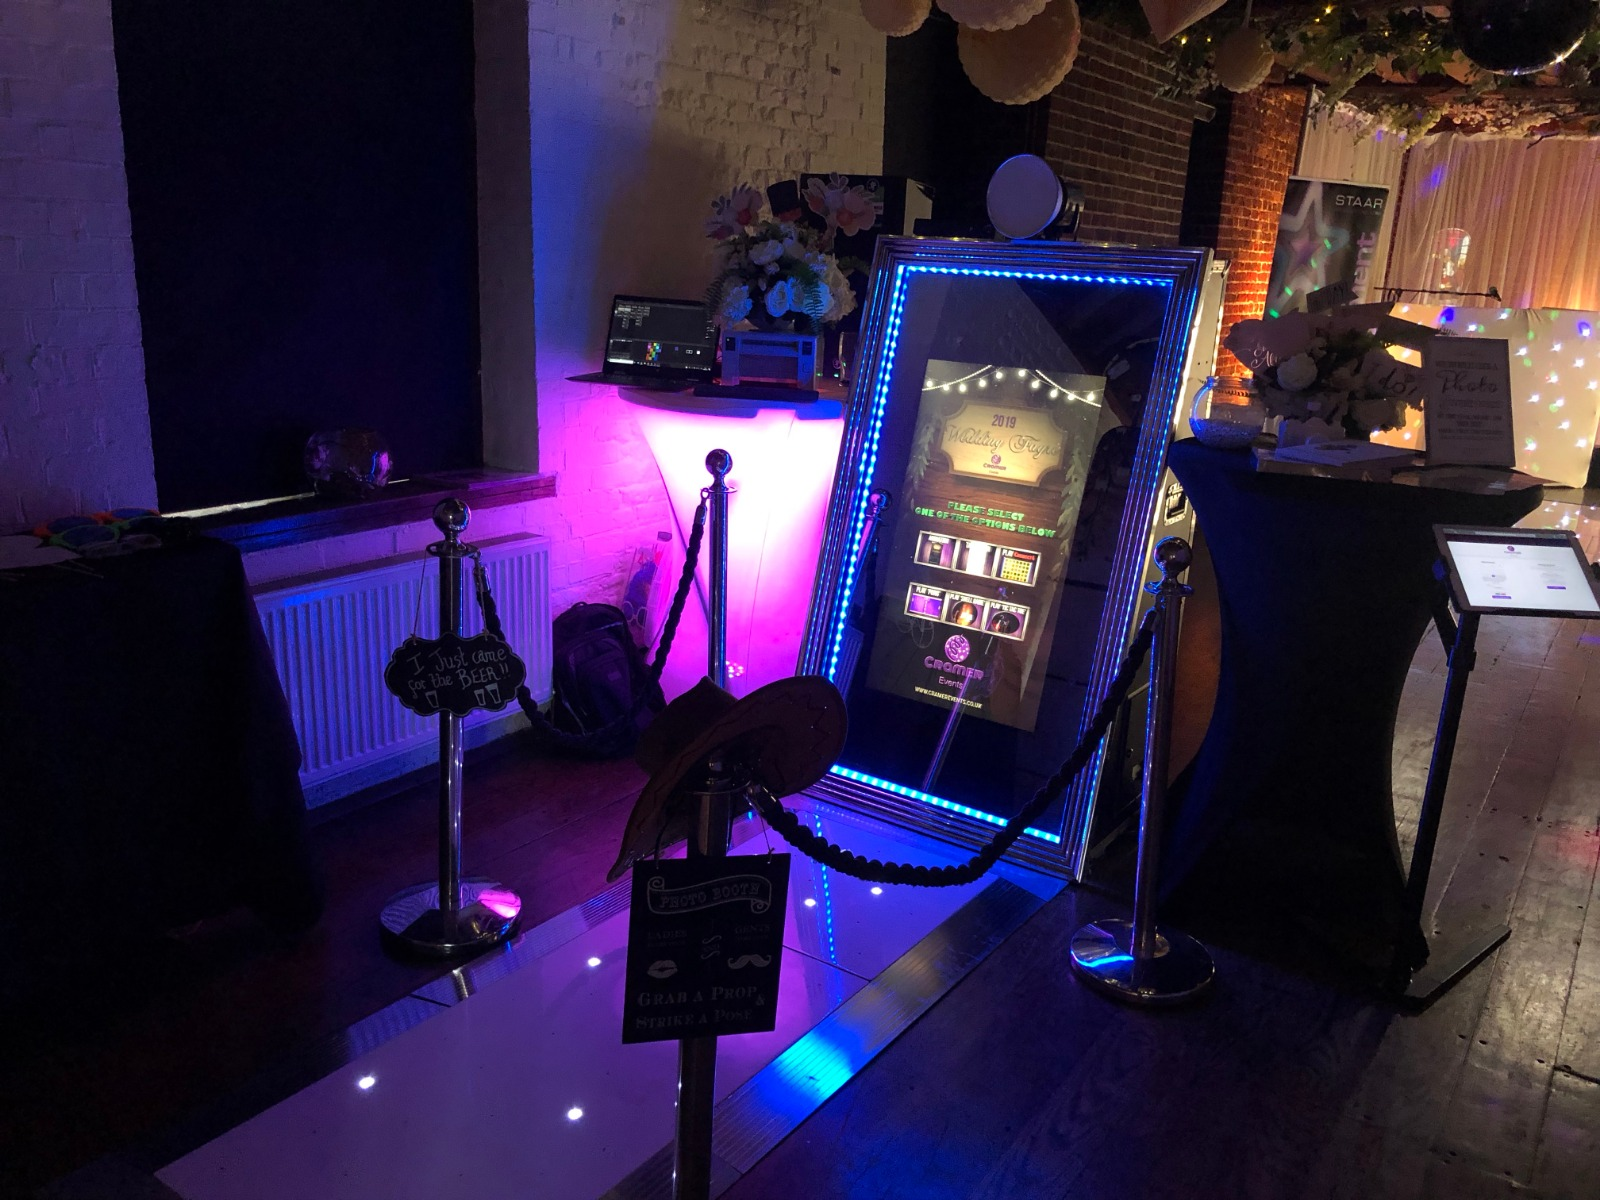 Magic Mirror Photo Booth with Walkway